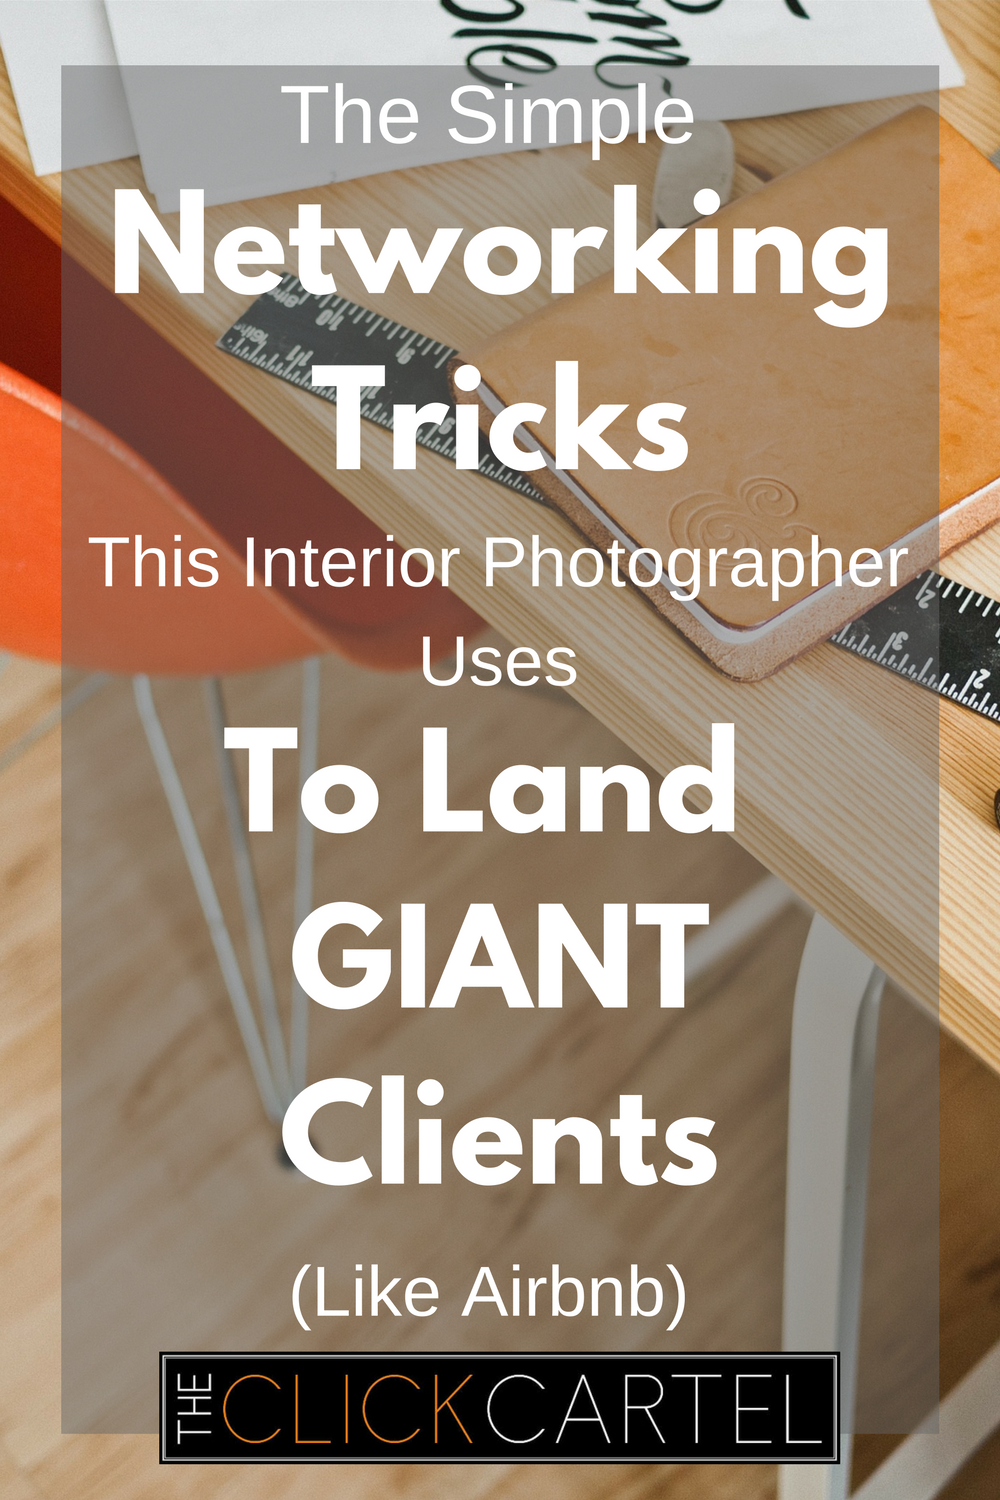 The Simple Networking Tricks This Interior Photographer Uses To Land Giant Clients Like Airbnb